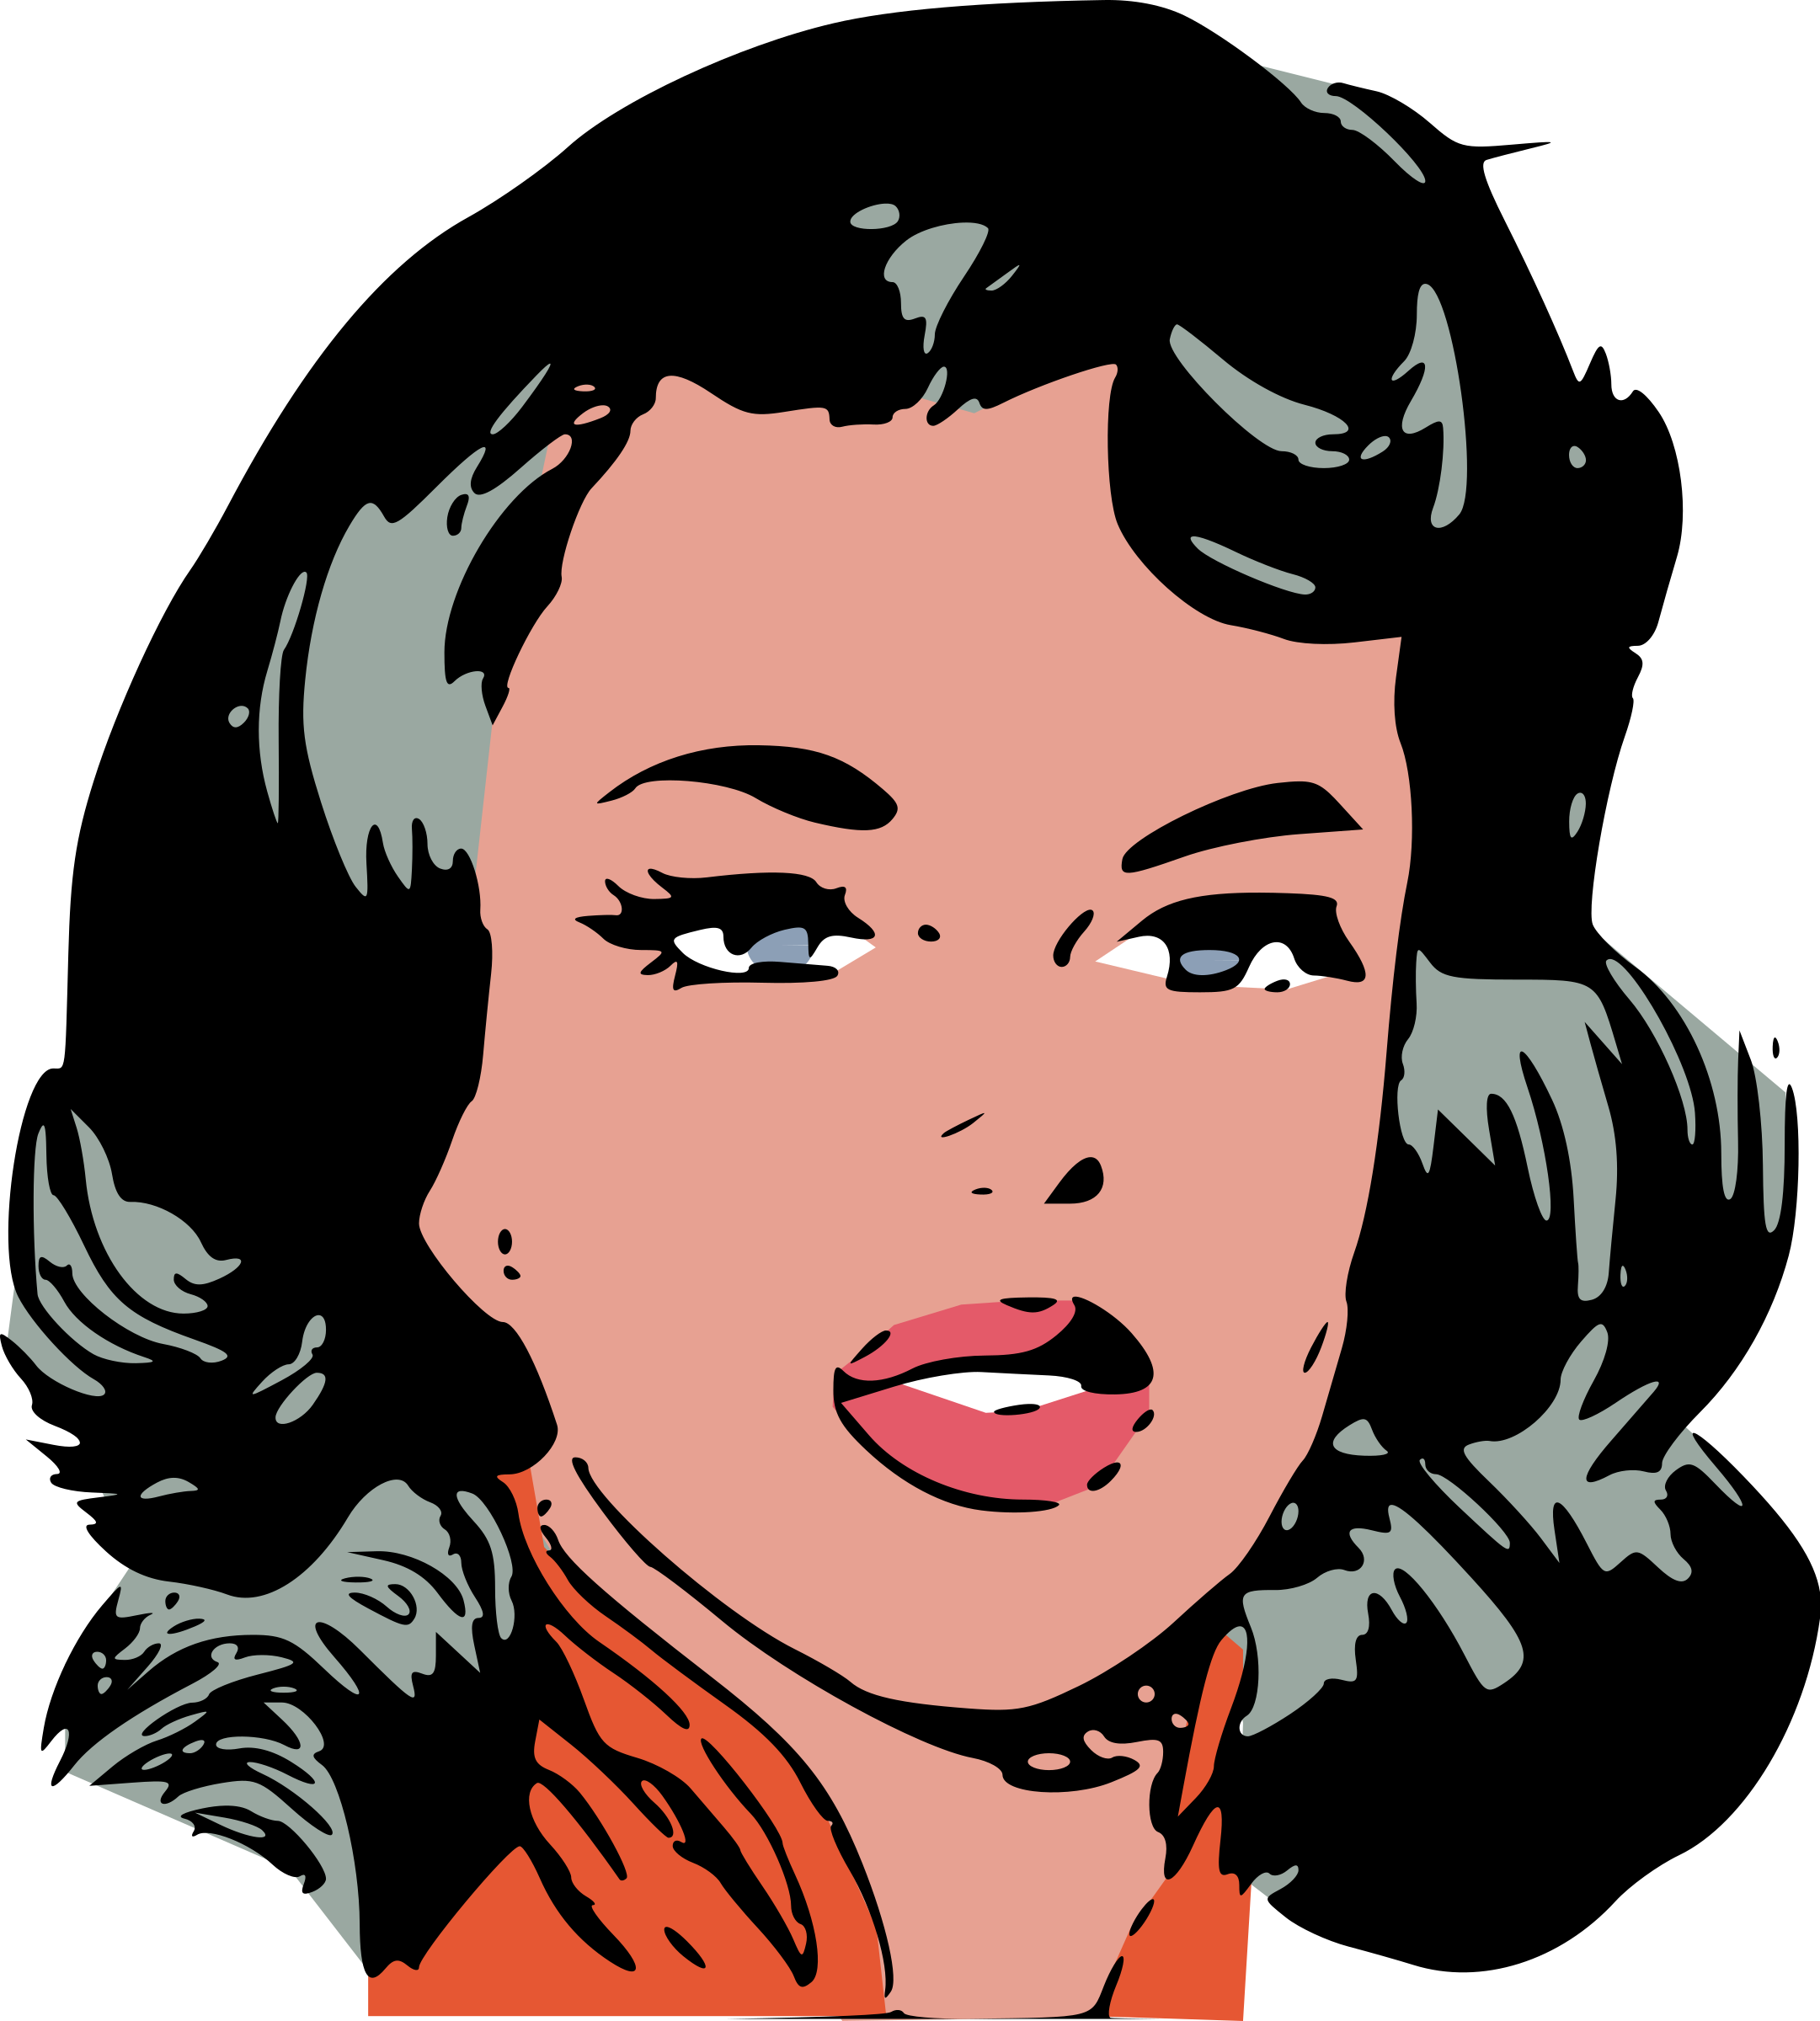 Woman s face clipart clipart freeuse download Free Face Woman Cliparts, Download Free Clip Art, Free Clip ... clipart freeuse download